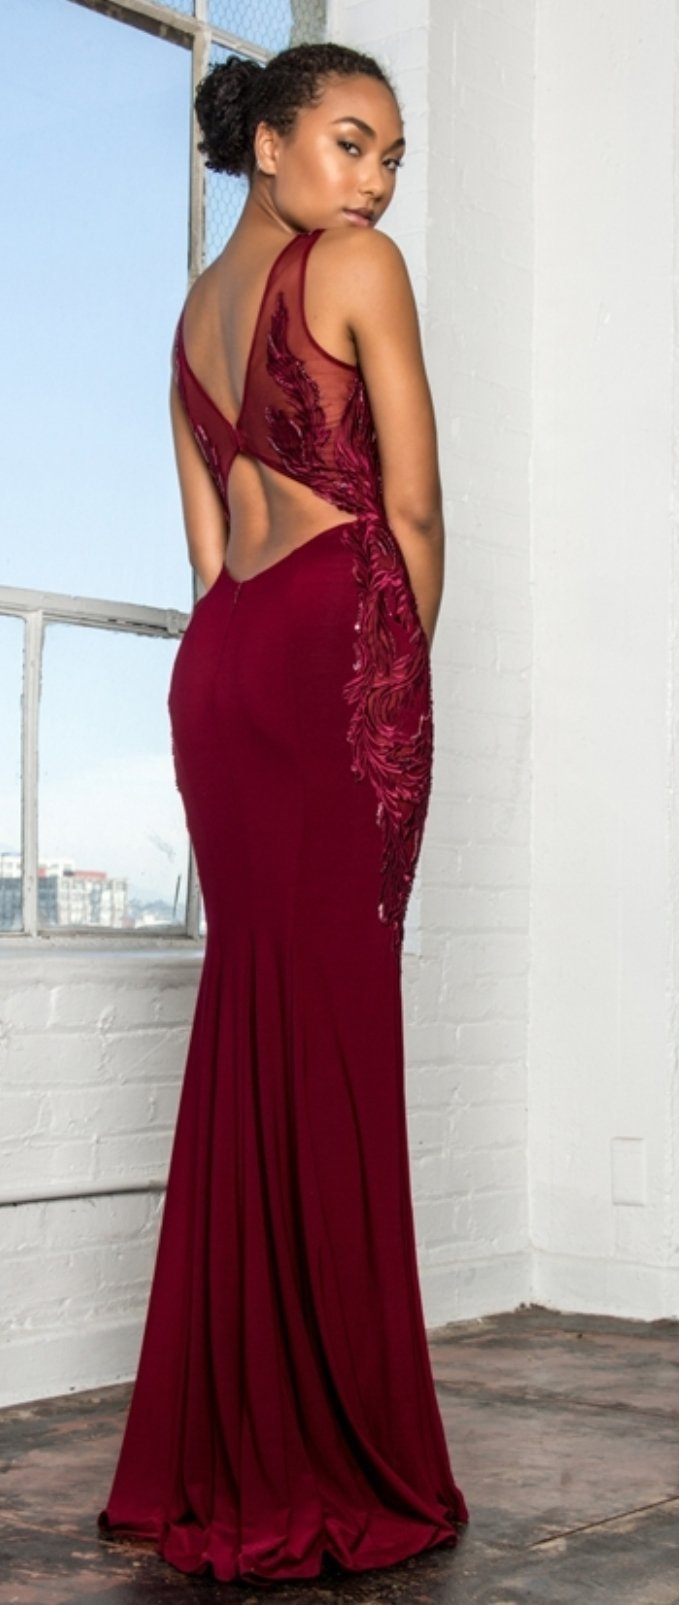 Open-Back Jersey Long Dress Accented with Side Embroidery - Fashdime shopfashdime.com